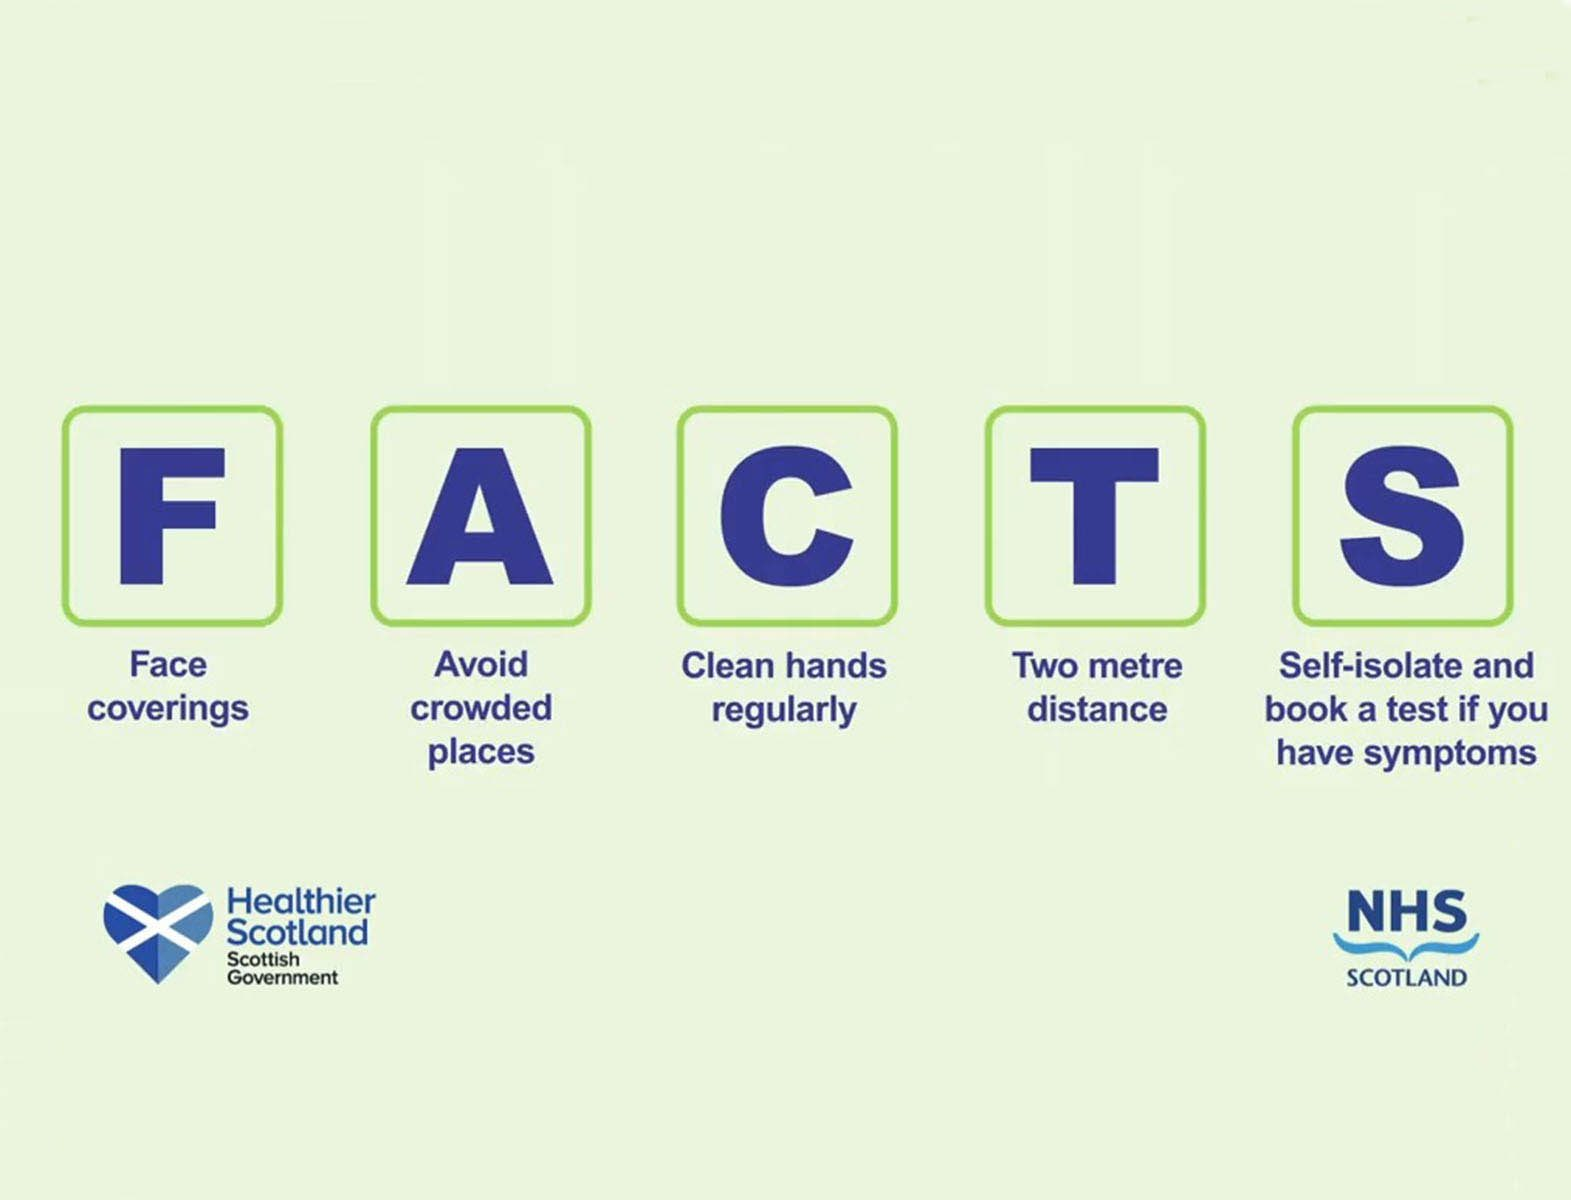 Scottish Government FACTS sign